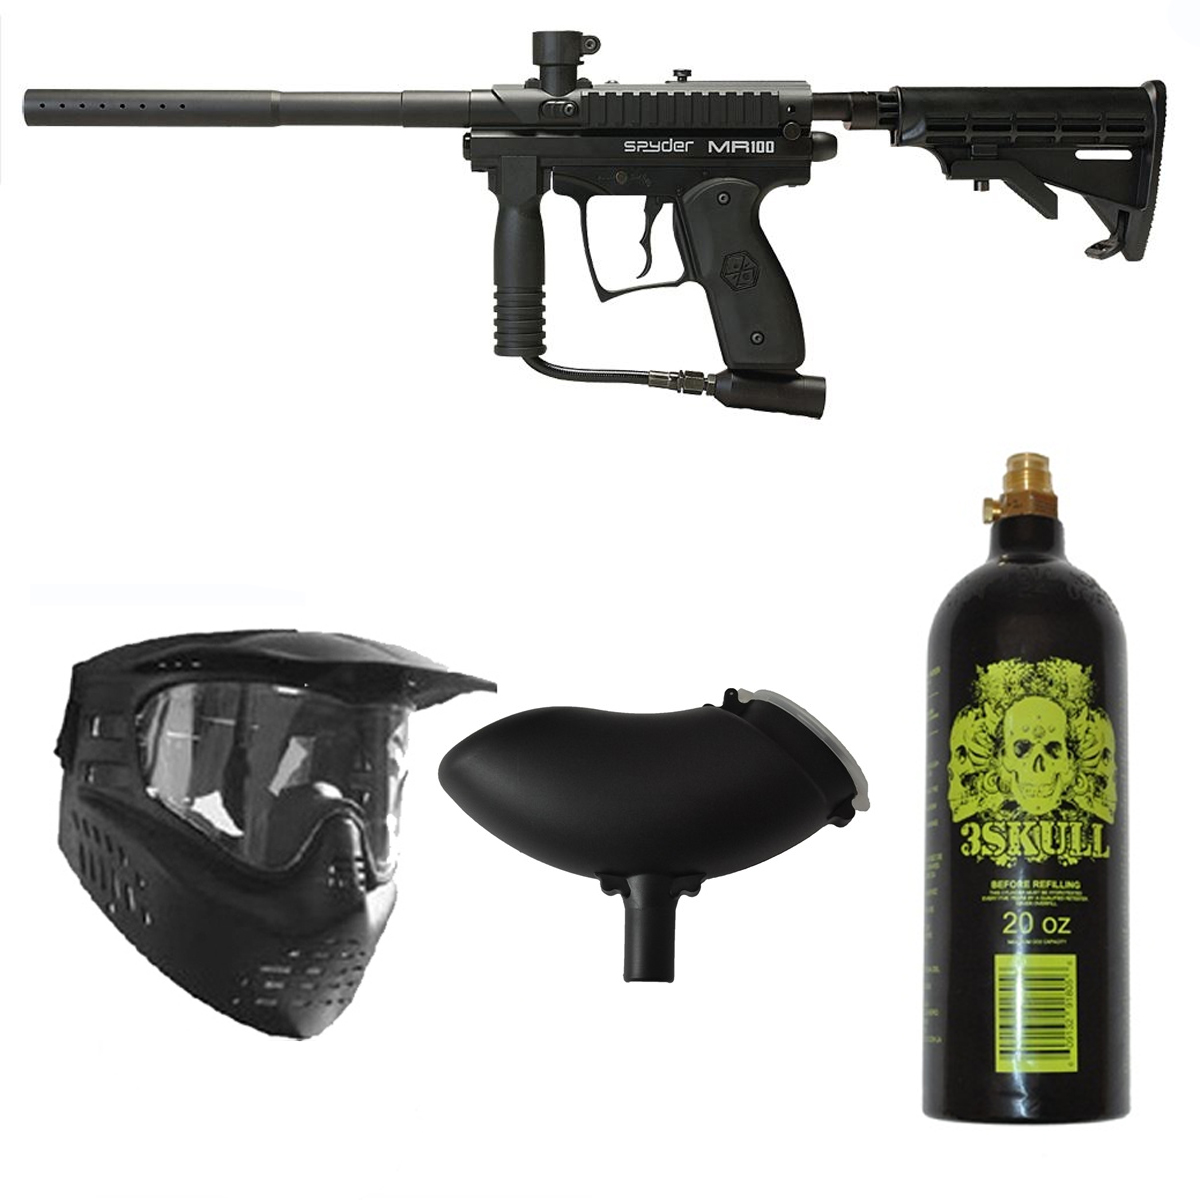 Spyder MR1 Paintball Marker Gun 3Skull Package Black by